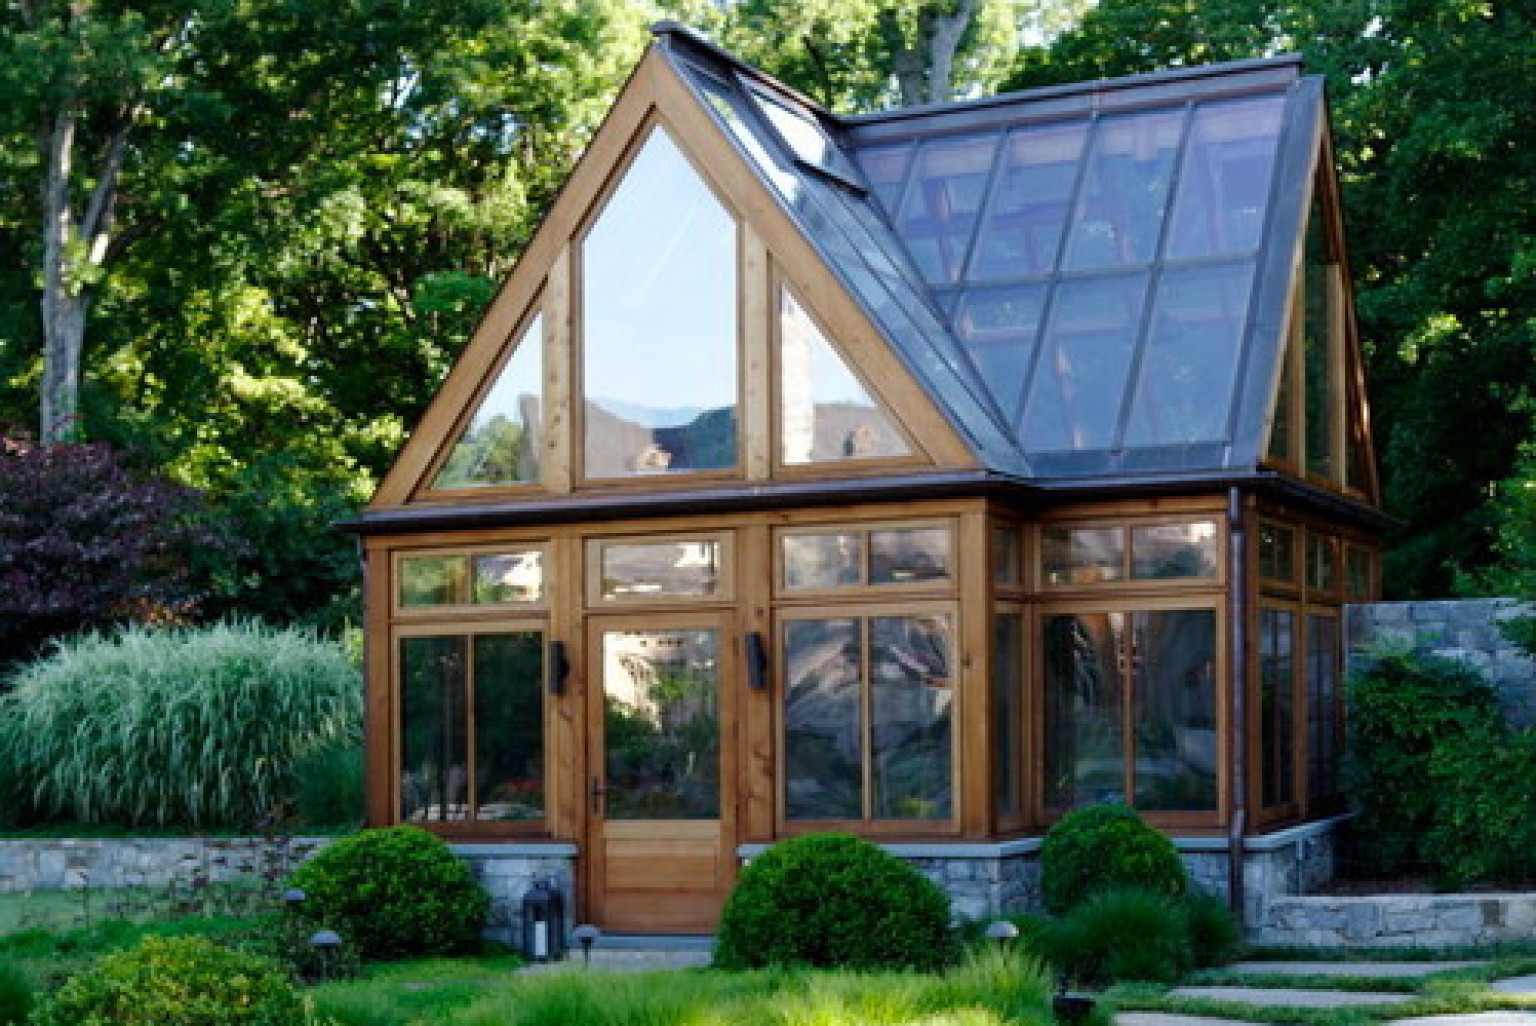 Build Your Own Shed >> 8 Gorgeous Greenhouses That Have Us Wanting To Become Botanists (PHOTOS) | HuffPost